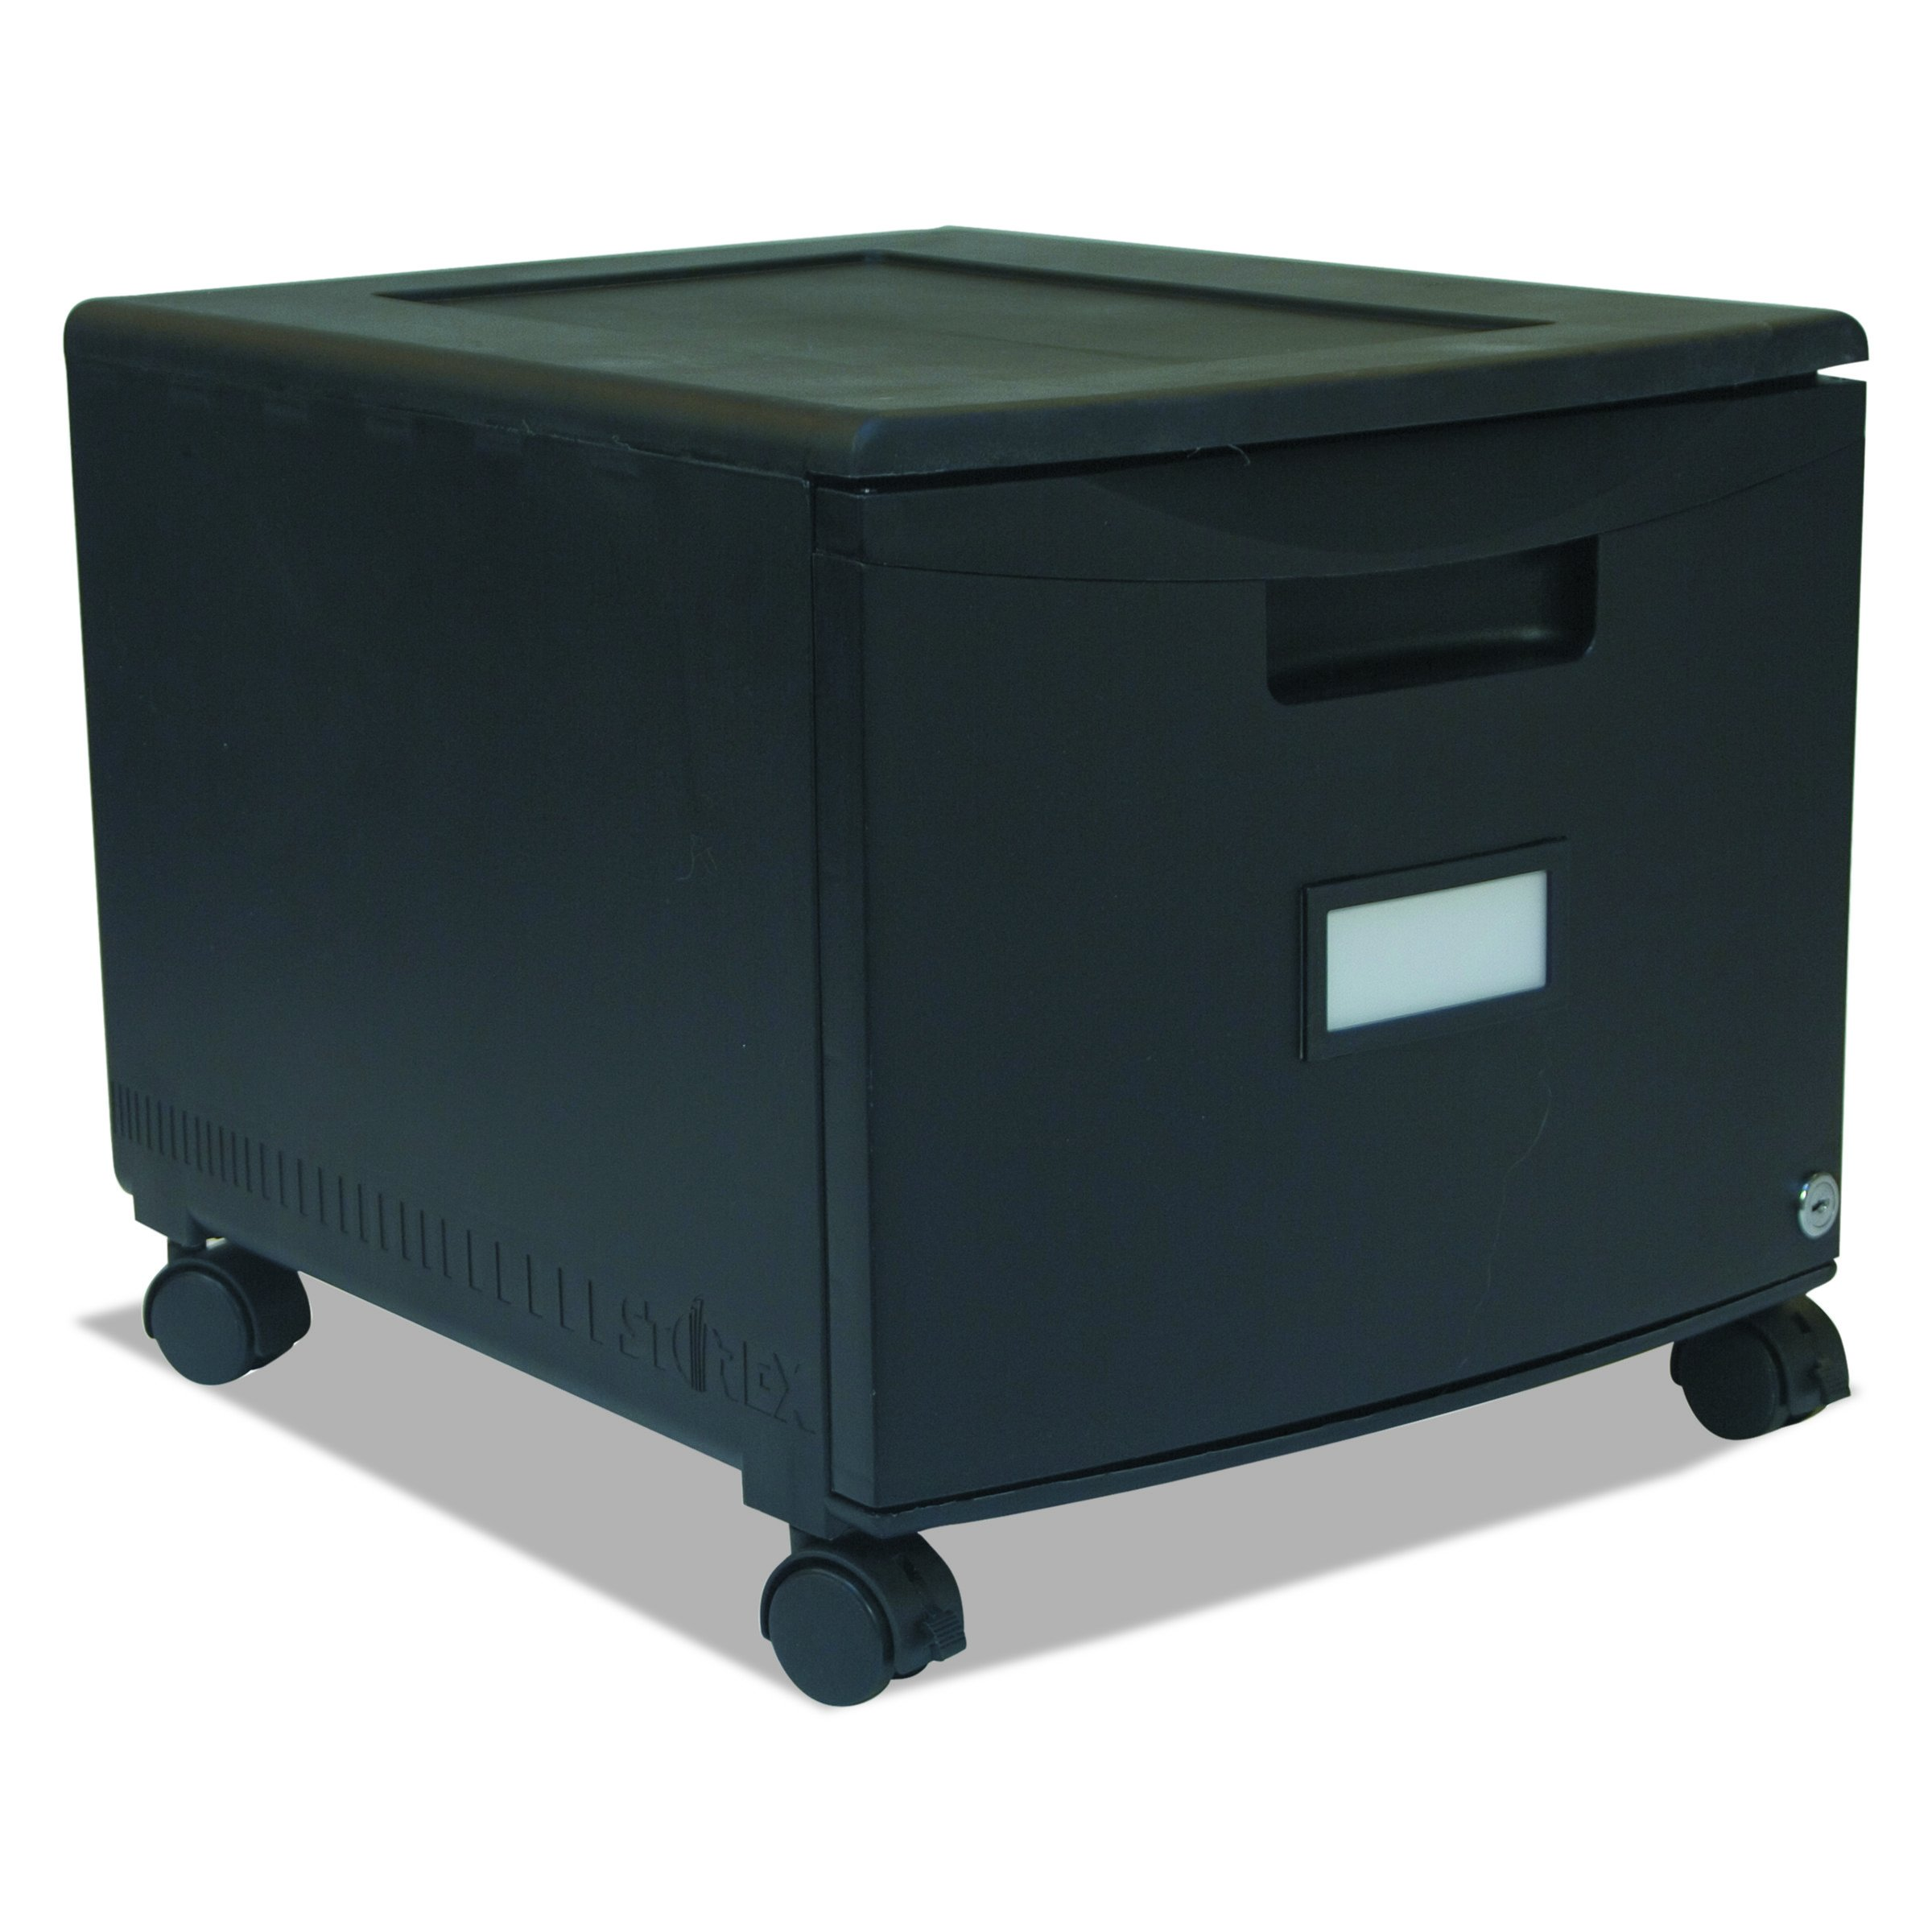 Storex Single Drawer Mini File Cabinet with Lock and Casters, Legal/Letter Size 18.25 x 14.75 x 12.75 Inches, Black (STX61259B01C) by Storex